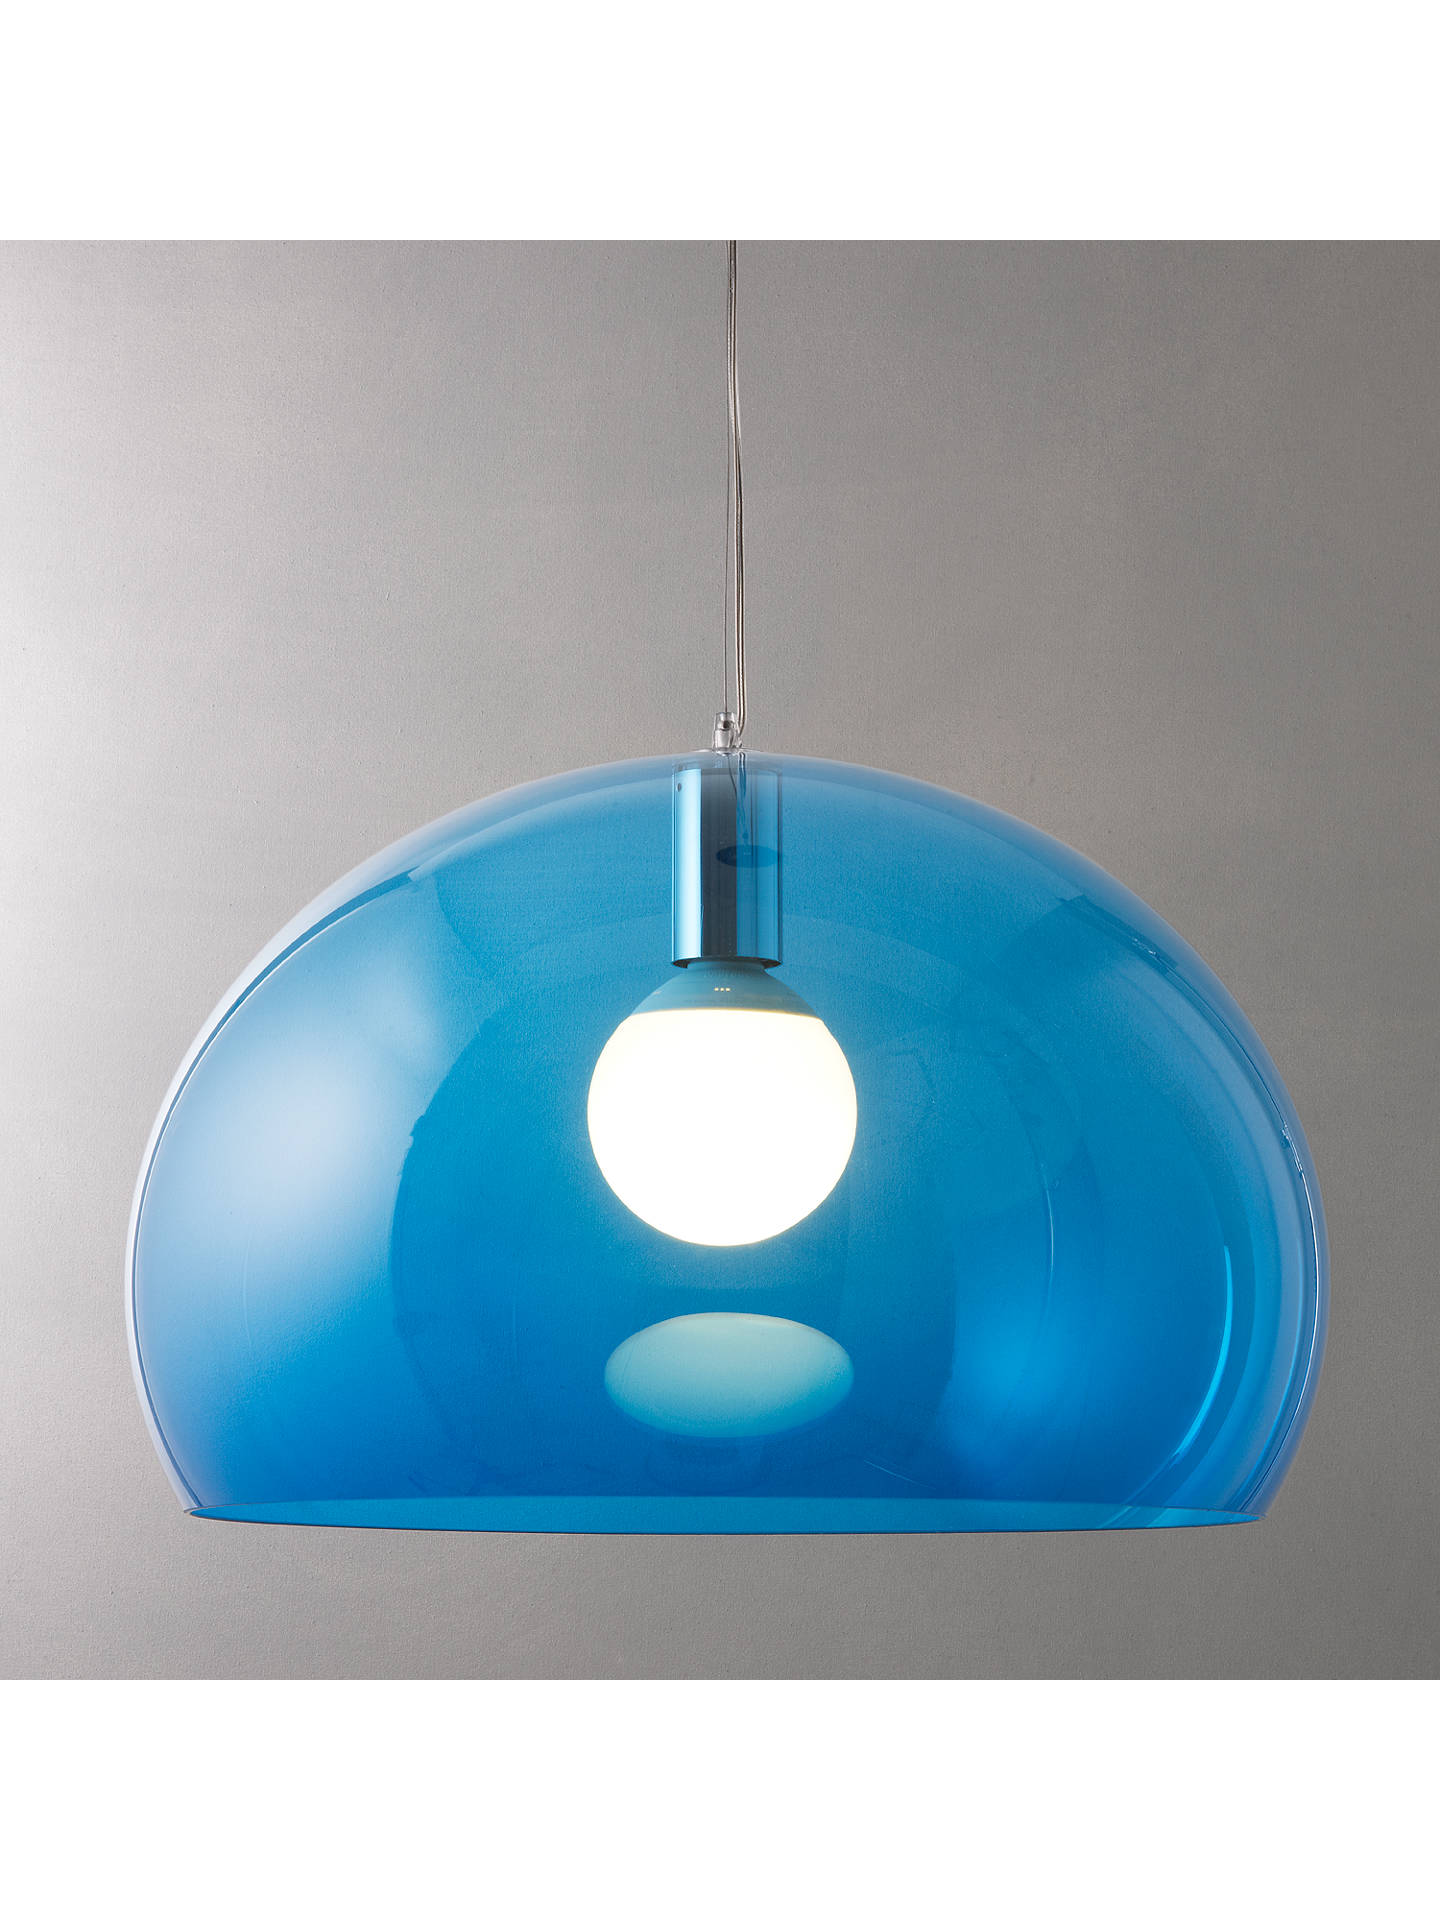 Kartell FLY Ceiling Light at John Lewis & Partners